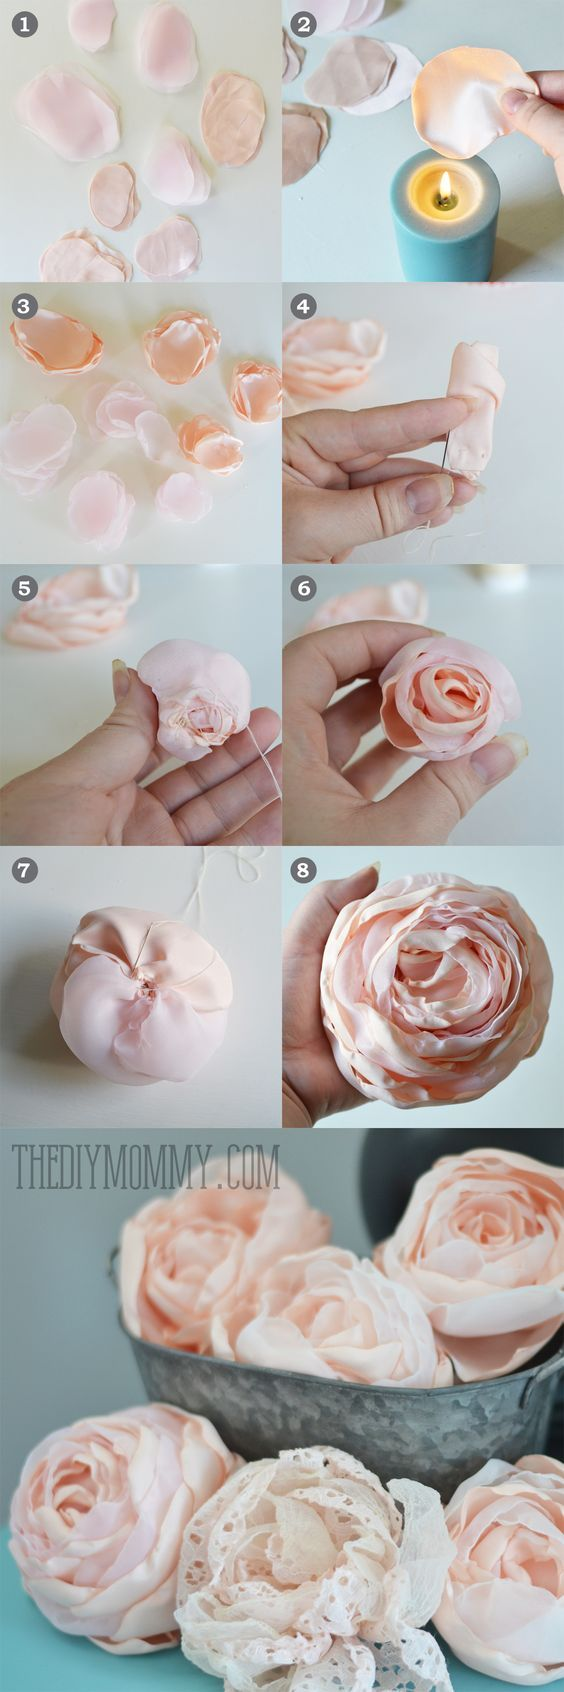 DIY Fabric Peonies or Cabbage Roses Tutorial by The DIY Mommy: